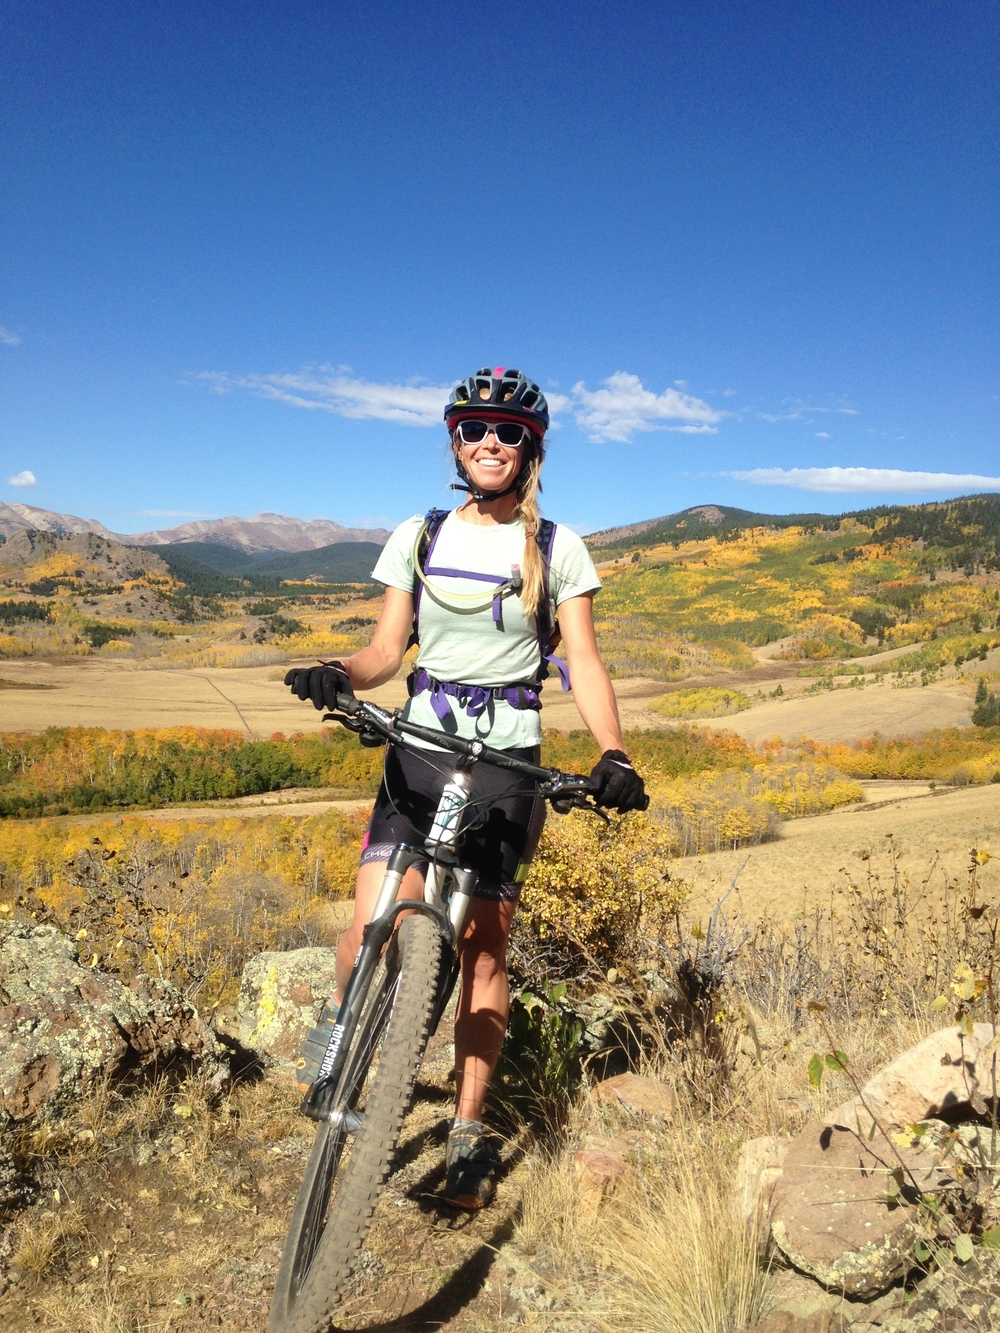 betsy w. Age: 34 Location: Lyons, CO Nomination comments:  Betsy is a go-getter in every sense of the word. She loves to explore new places and push her body to new limits. She's also a fine camp cook and knows her bikes and brews. If we were forced to live in a Westy van on the Pacific Coast for the rest of our lives, we'd want Betsy along for the ride!  Gociety Profile